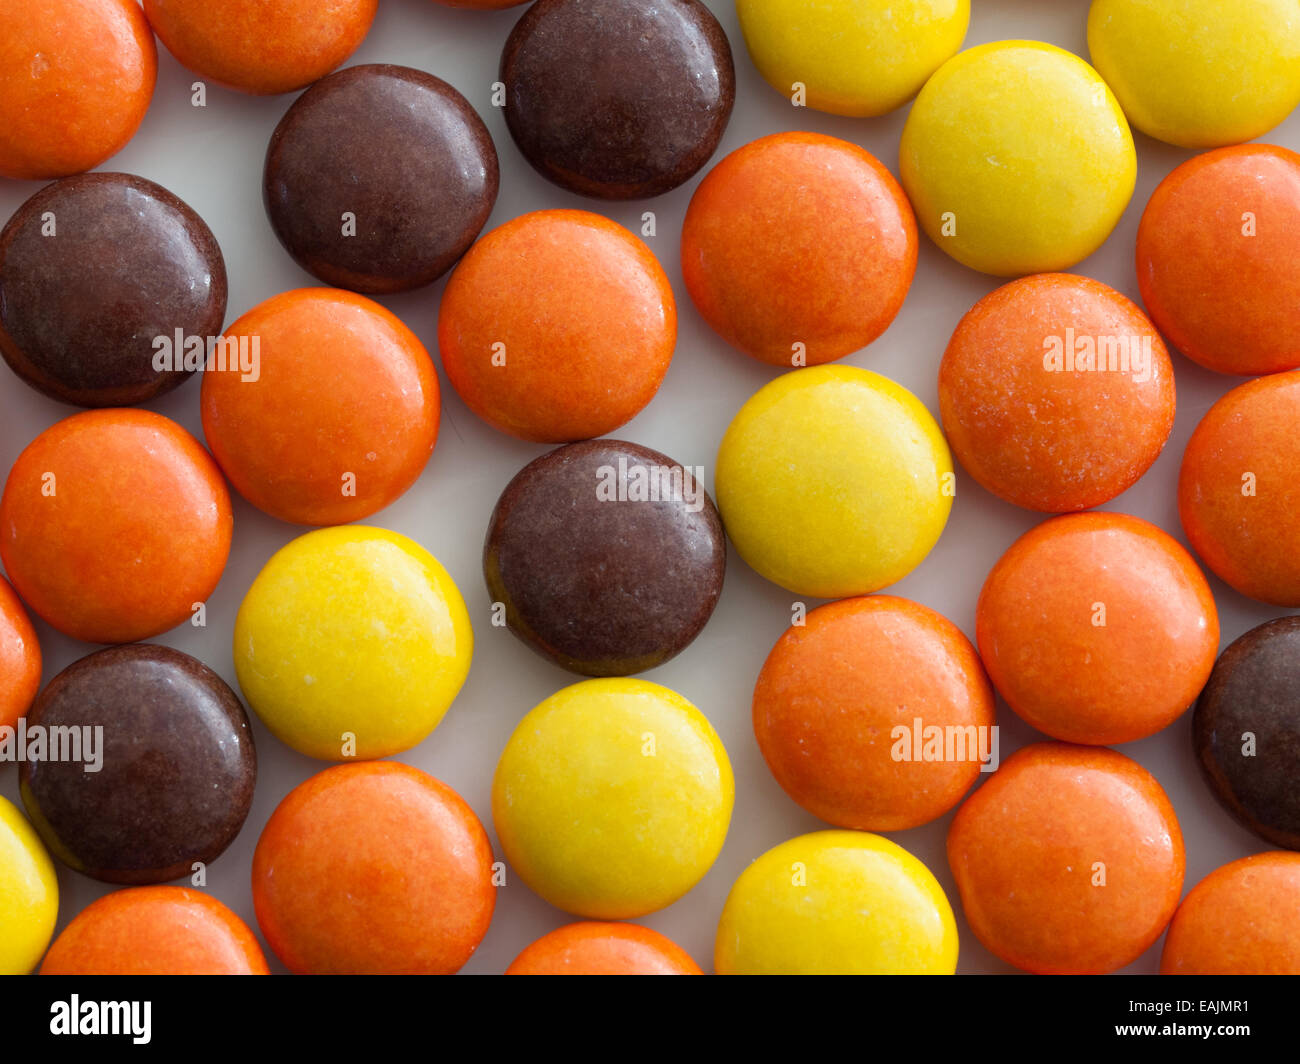 A close-up of Reese's Pieces peanut butter candy. Manufactured by The Hershey Company. Stock Photo